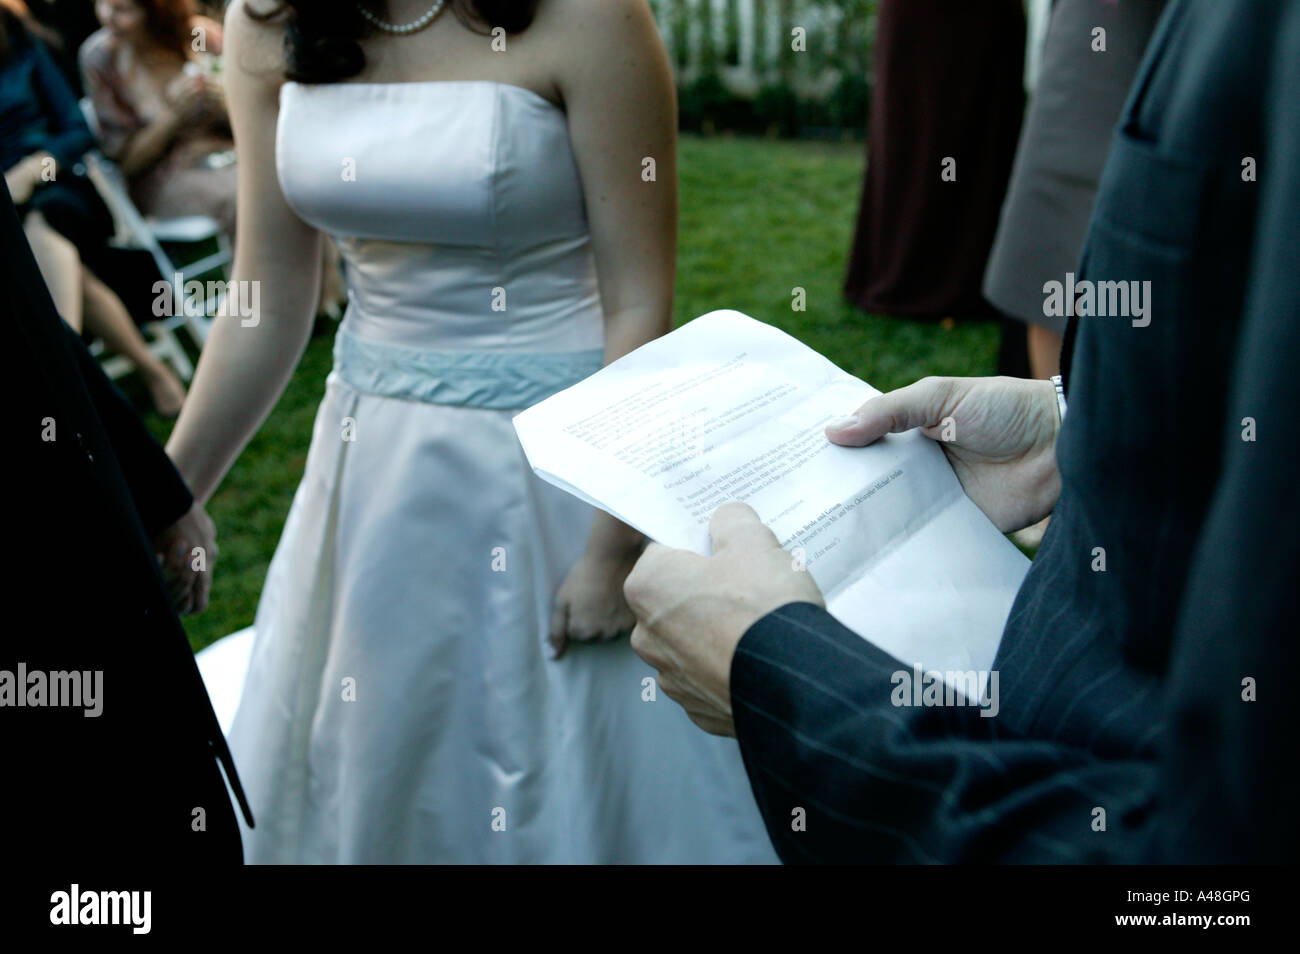 Bride and groom during marriage ceremony, mid section Stock Photo